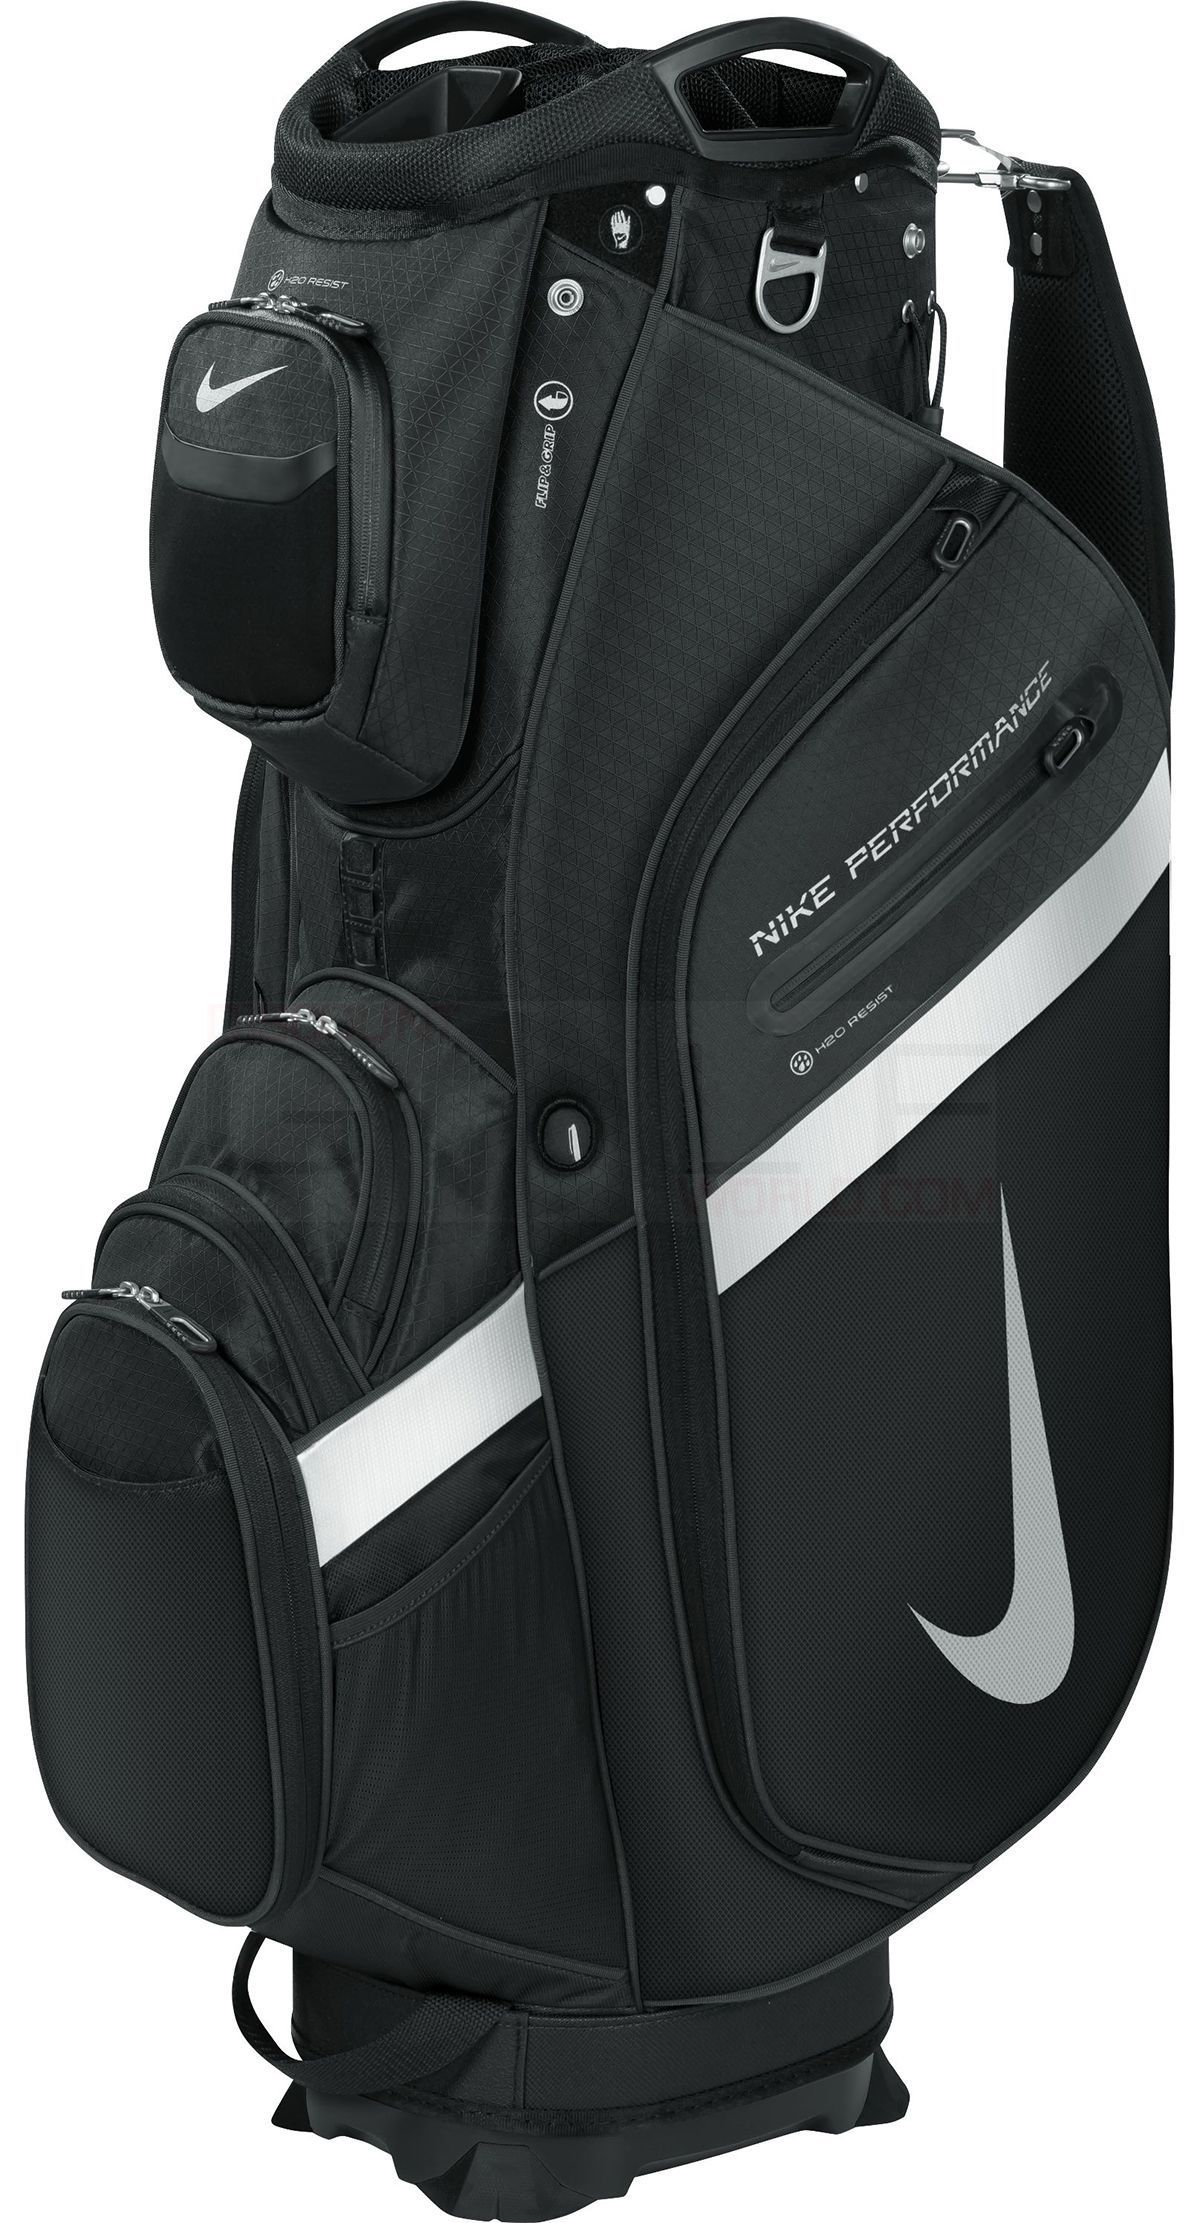 0db49bbb1700 Nike Performance Cart IV Bag 14-Way Dual-Sided Top